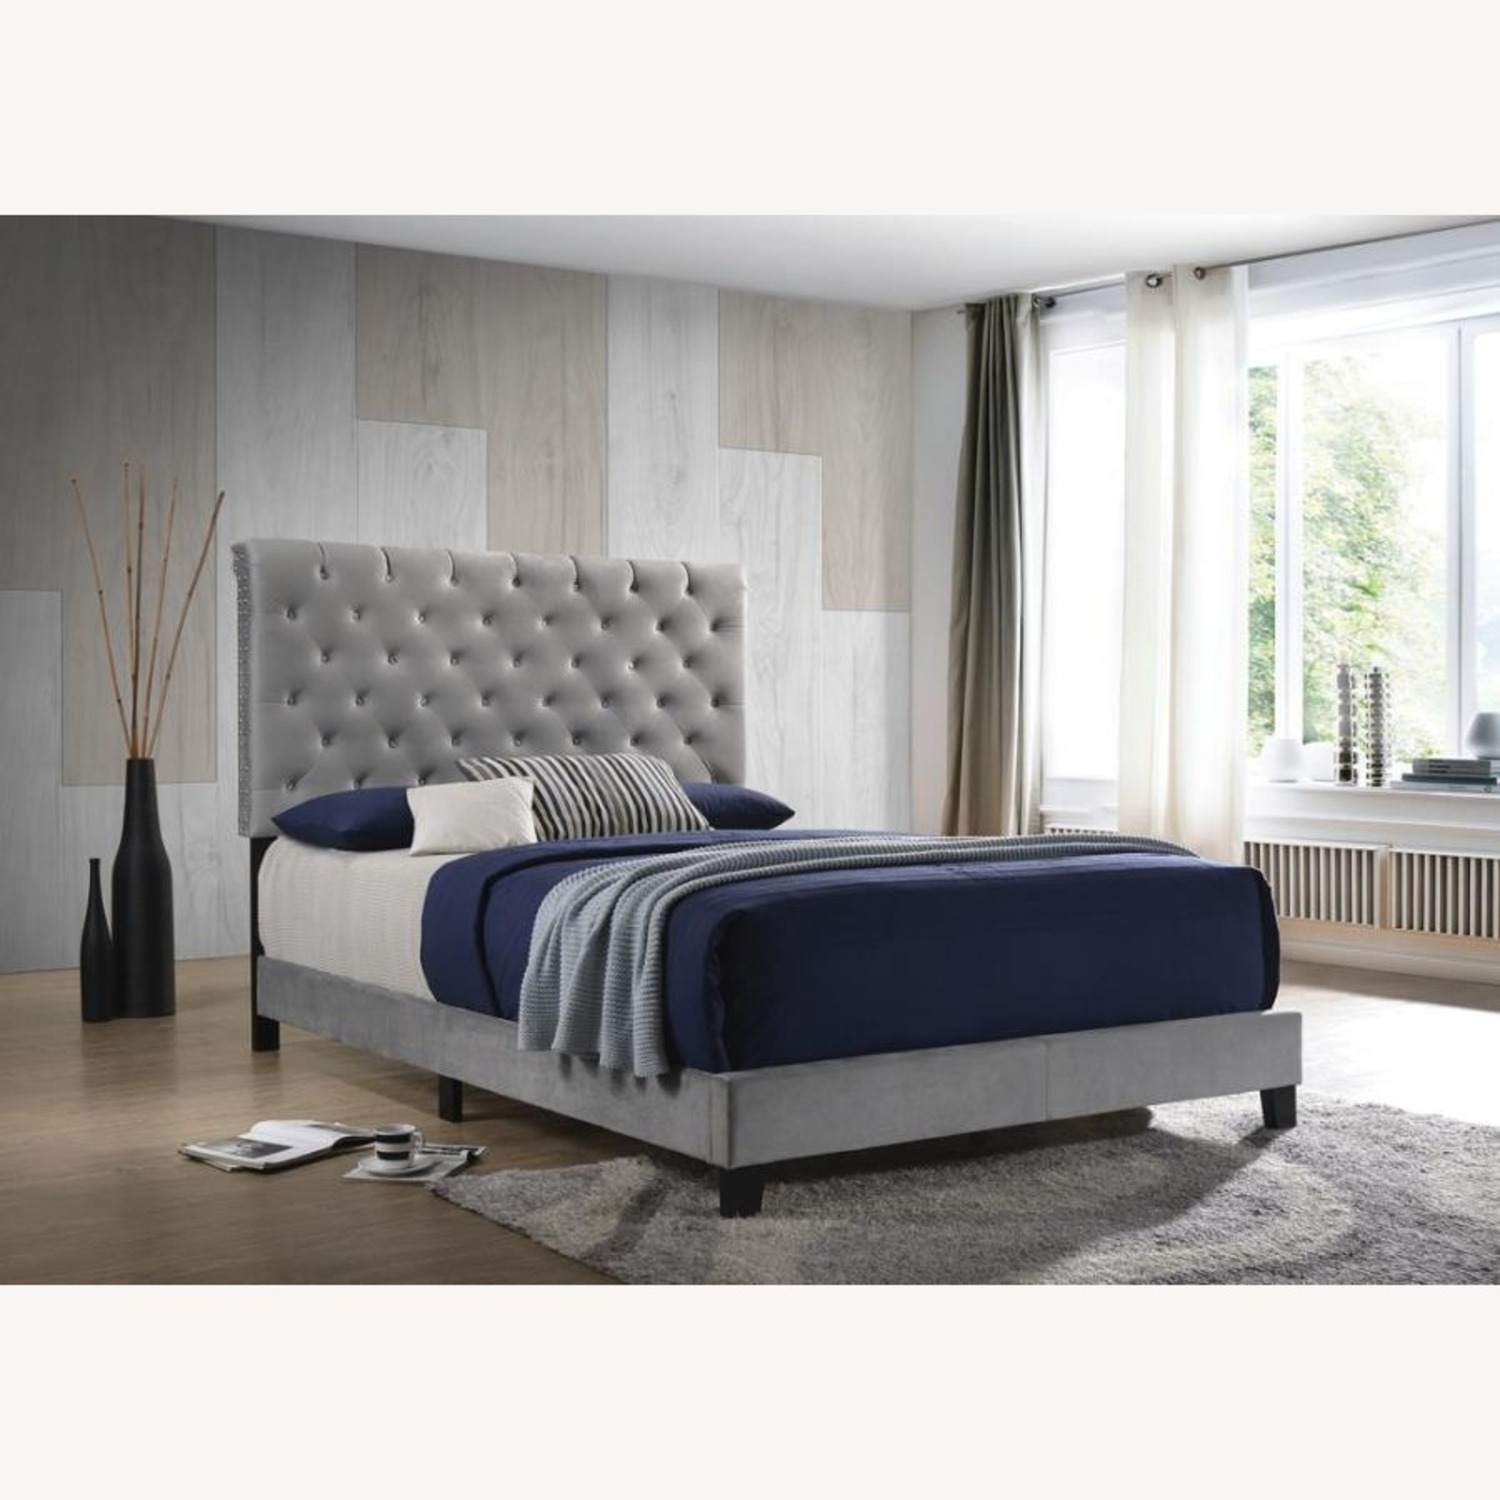 King Bed In Grey Velvet W/ Faux Crystal Button - image-3